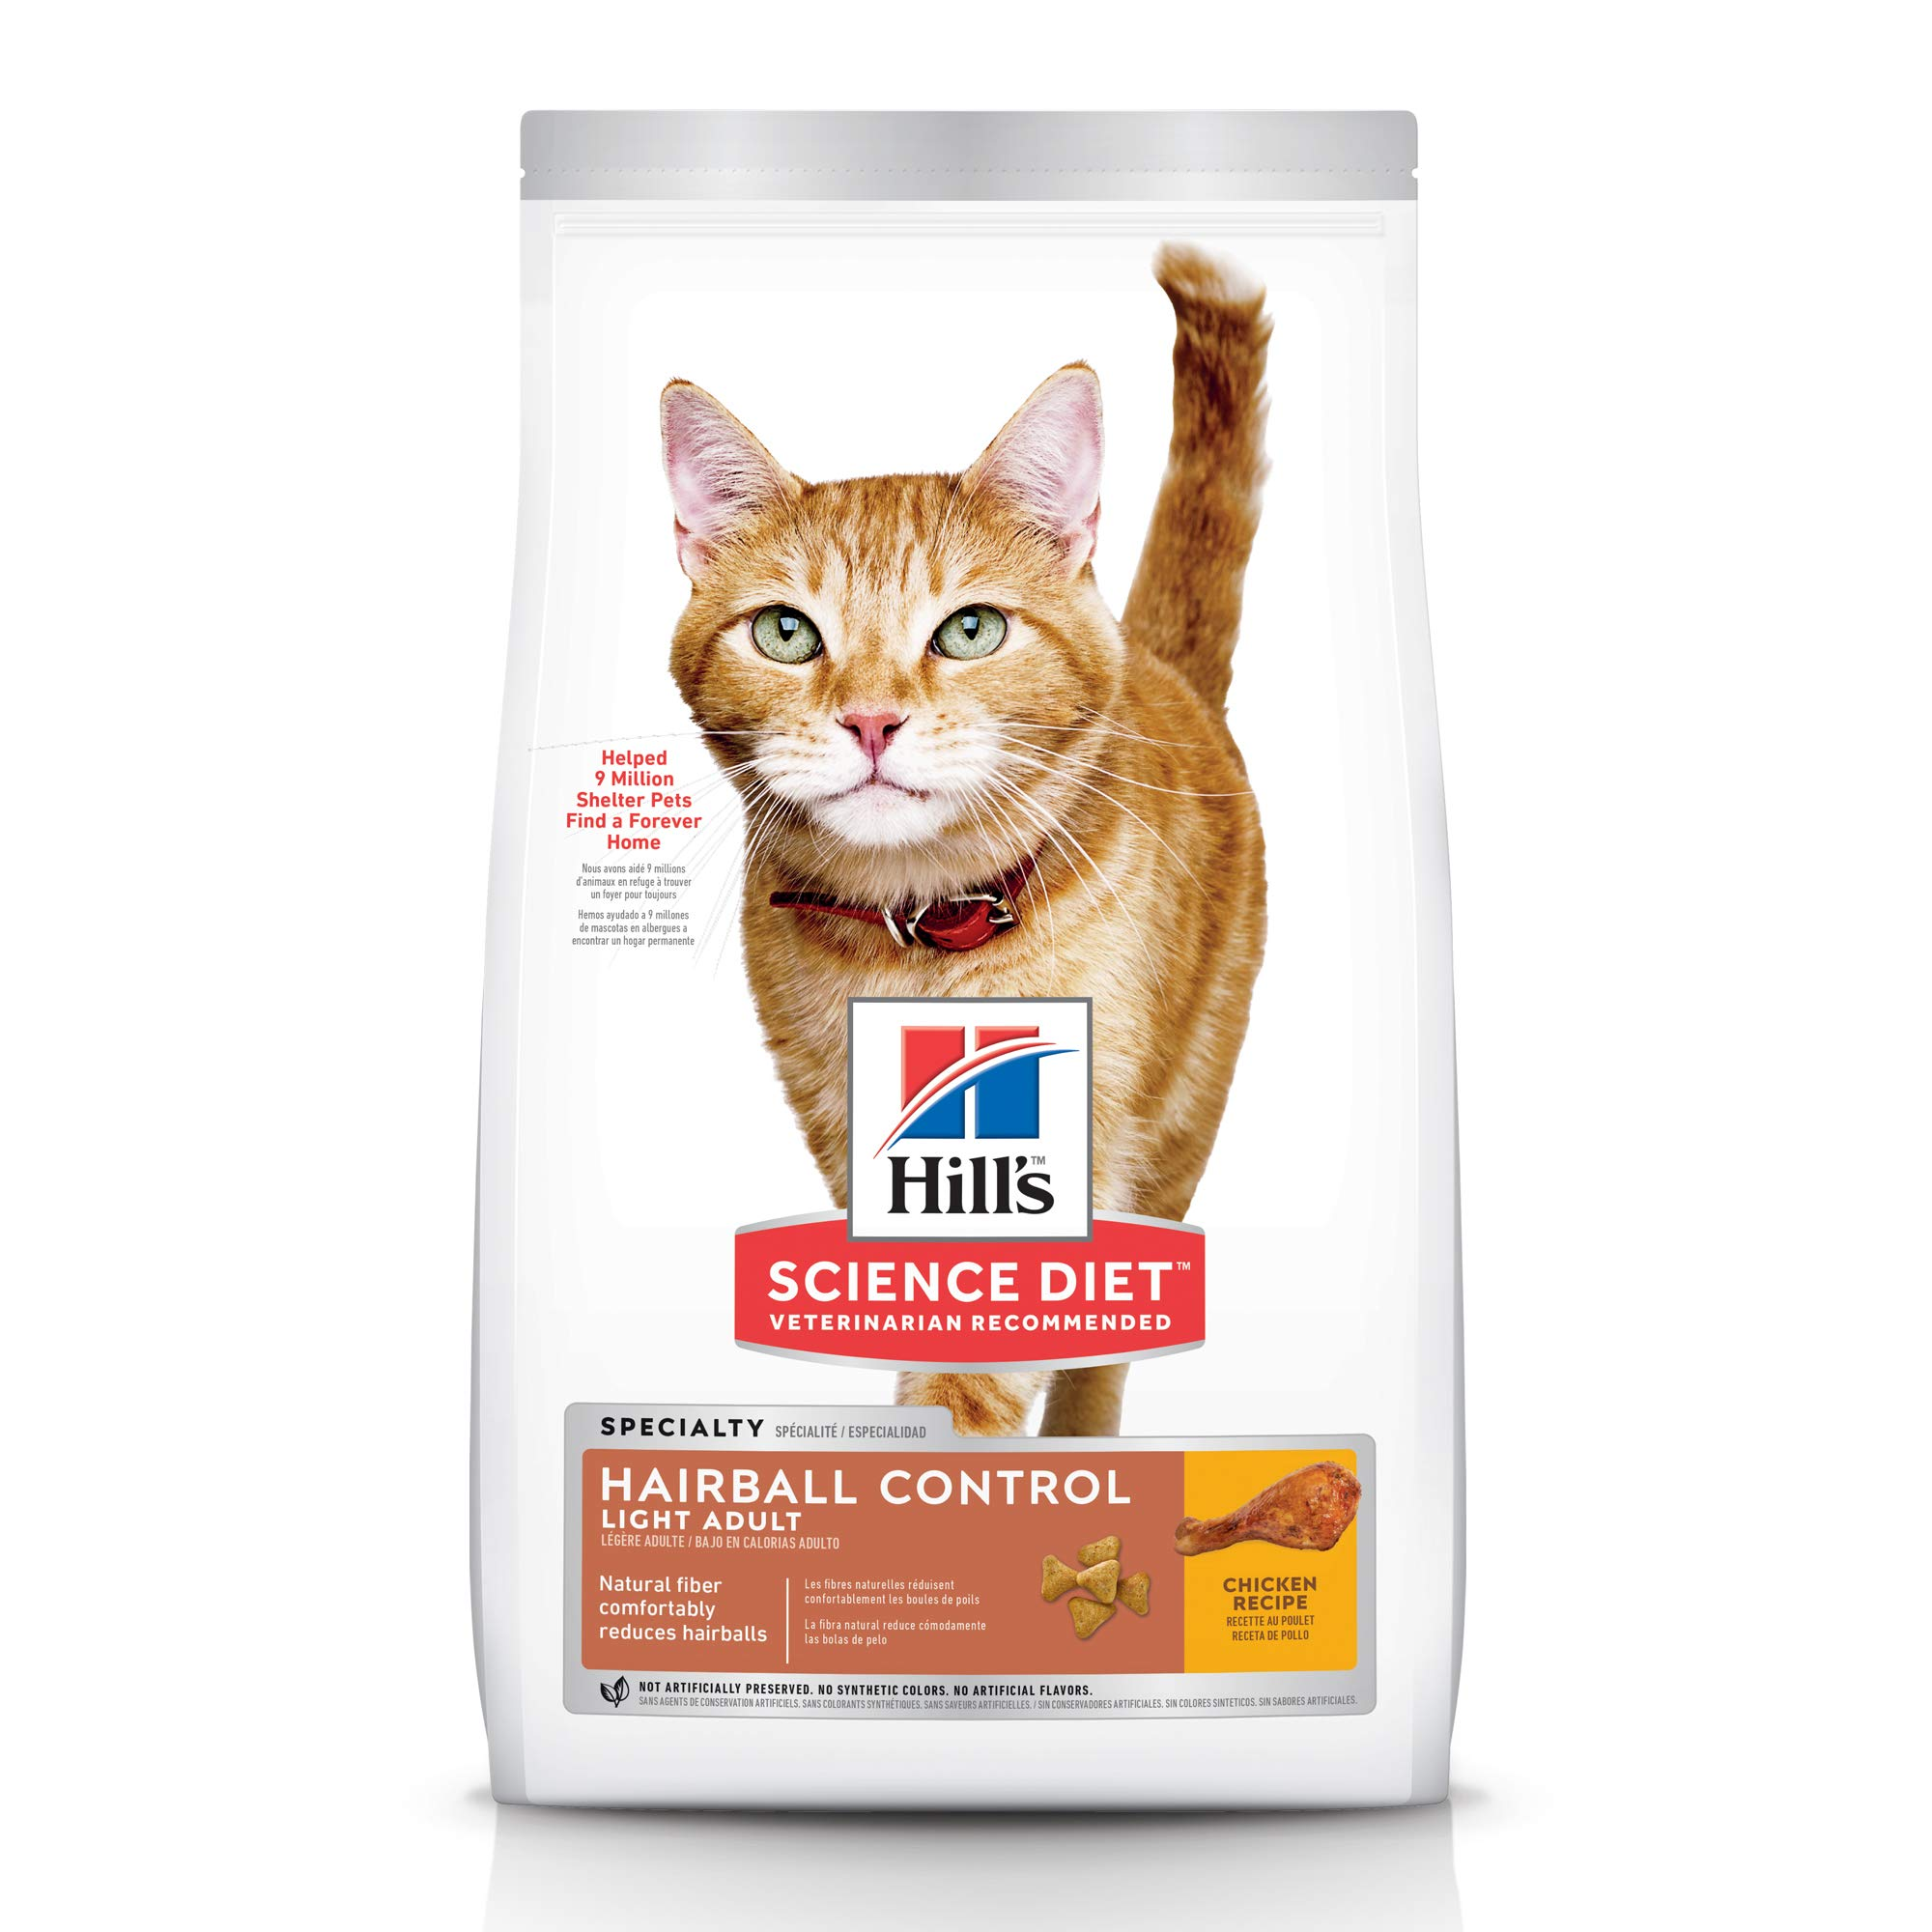 Hill's Science Diet Dry Cat Food, Adult, Hairball Control, Light for Healthy Weight & Weight Management, Chicken Recipe, 15.5 lb Bag by Hill's Science Diet